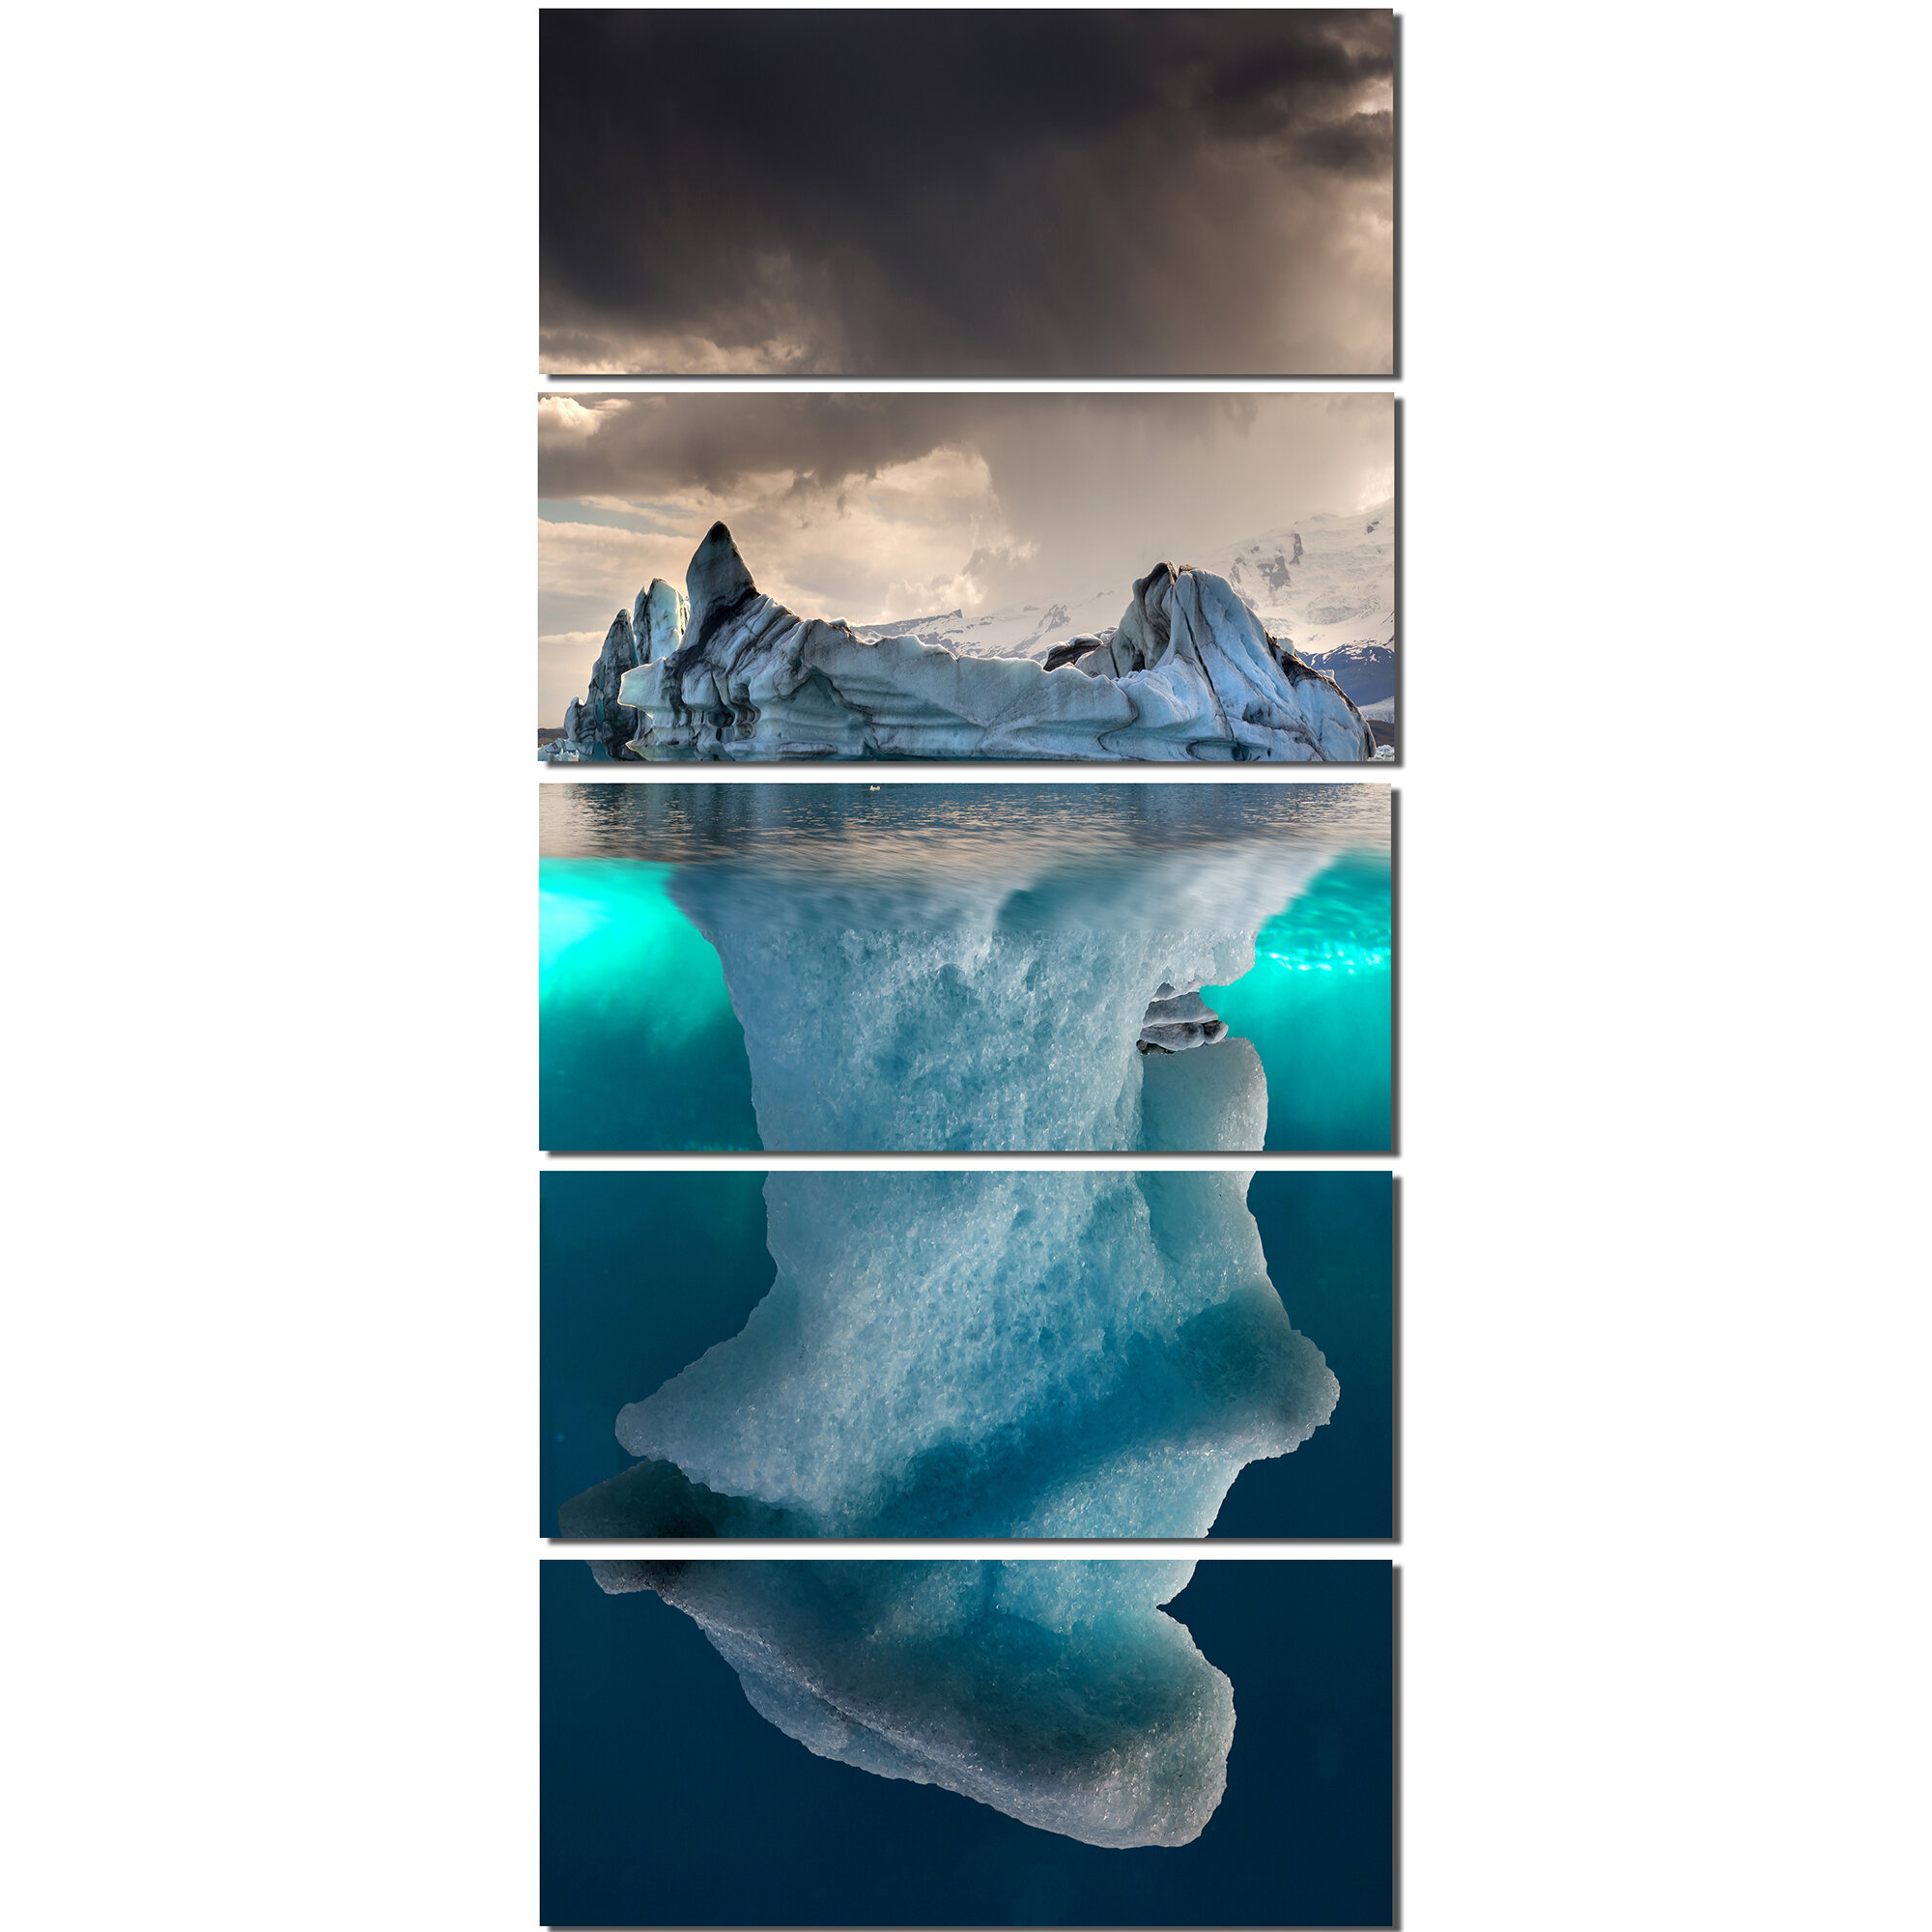 Ebern Designs Large Iceberg In Sea 5 Piece Wall Art On Wrapped Canvas Set Reviews Wayfair Ca